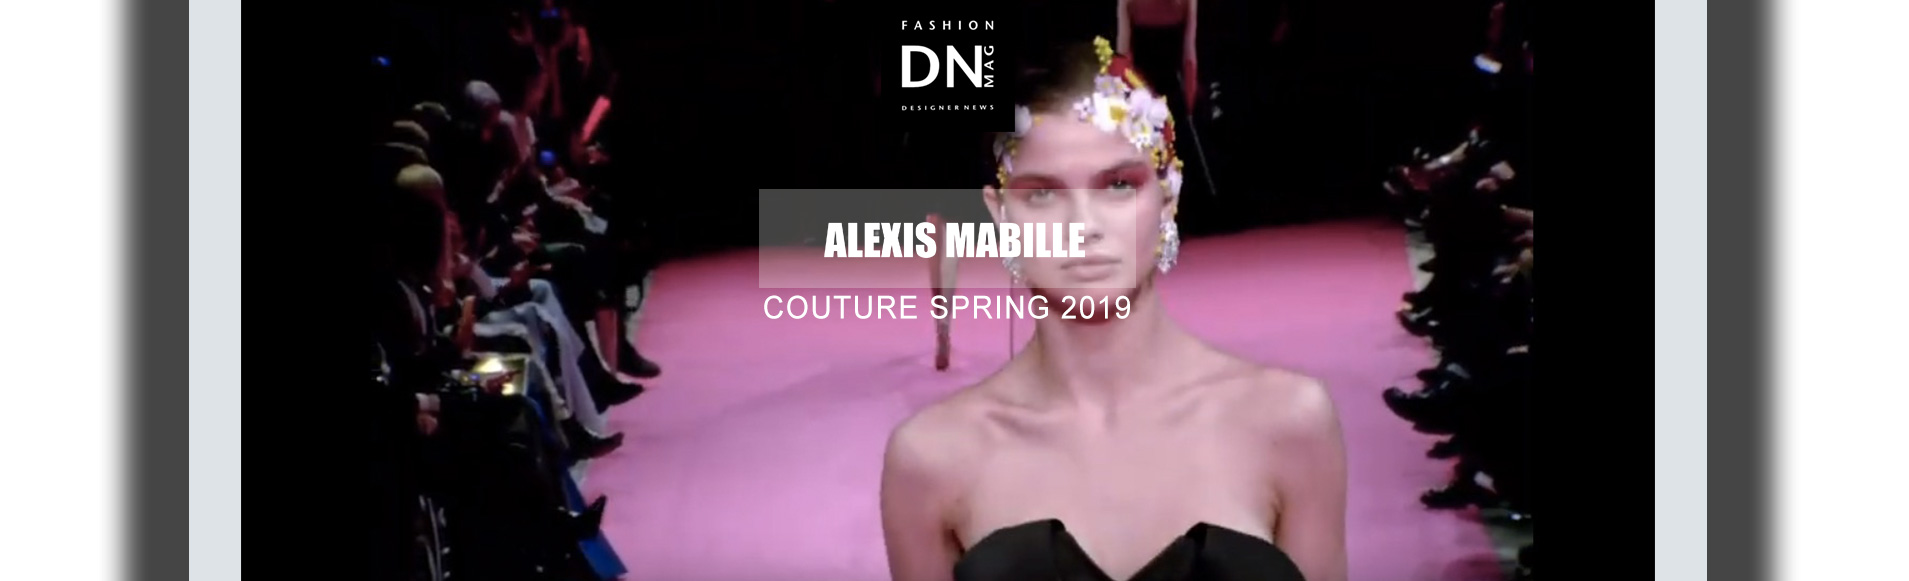 DNMAG-ALEXIS-MABILLE-COUTURE-SPRING-2019